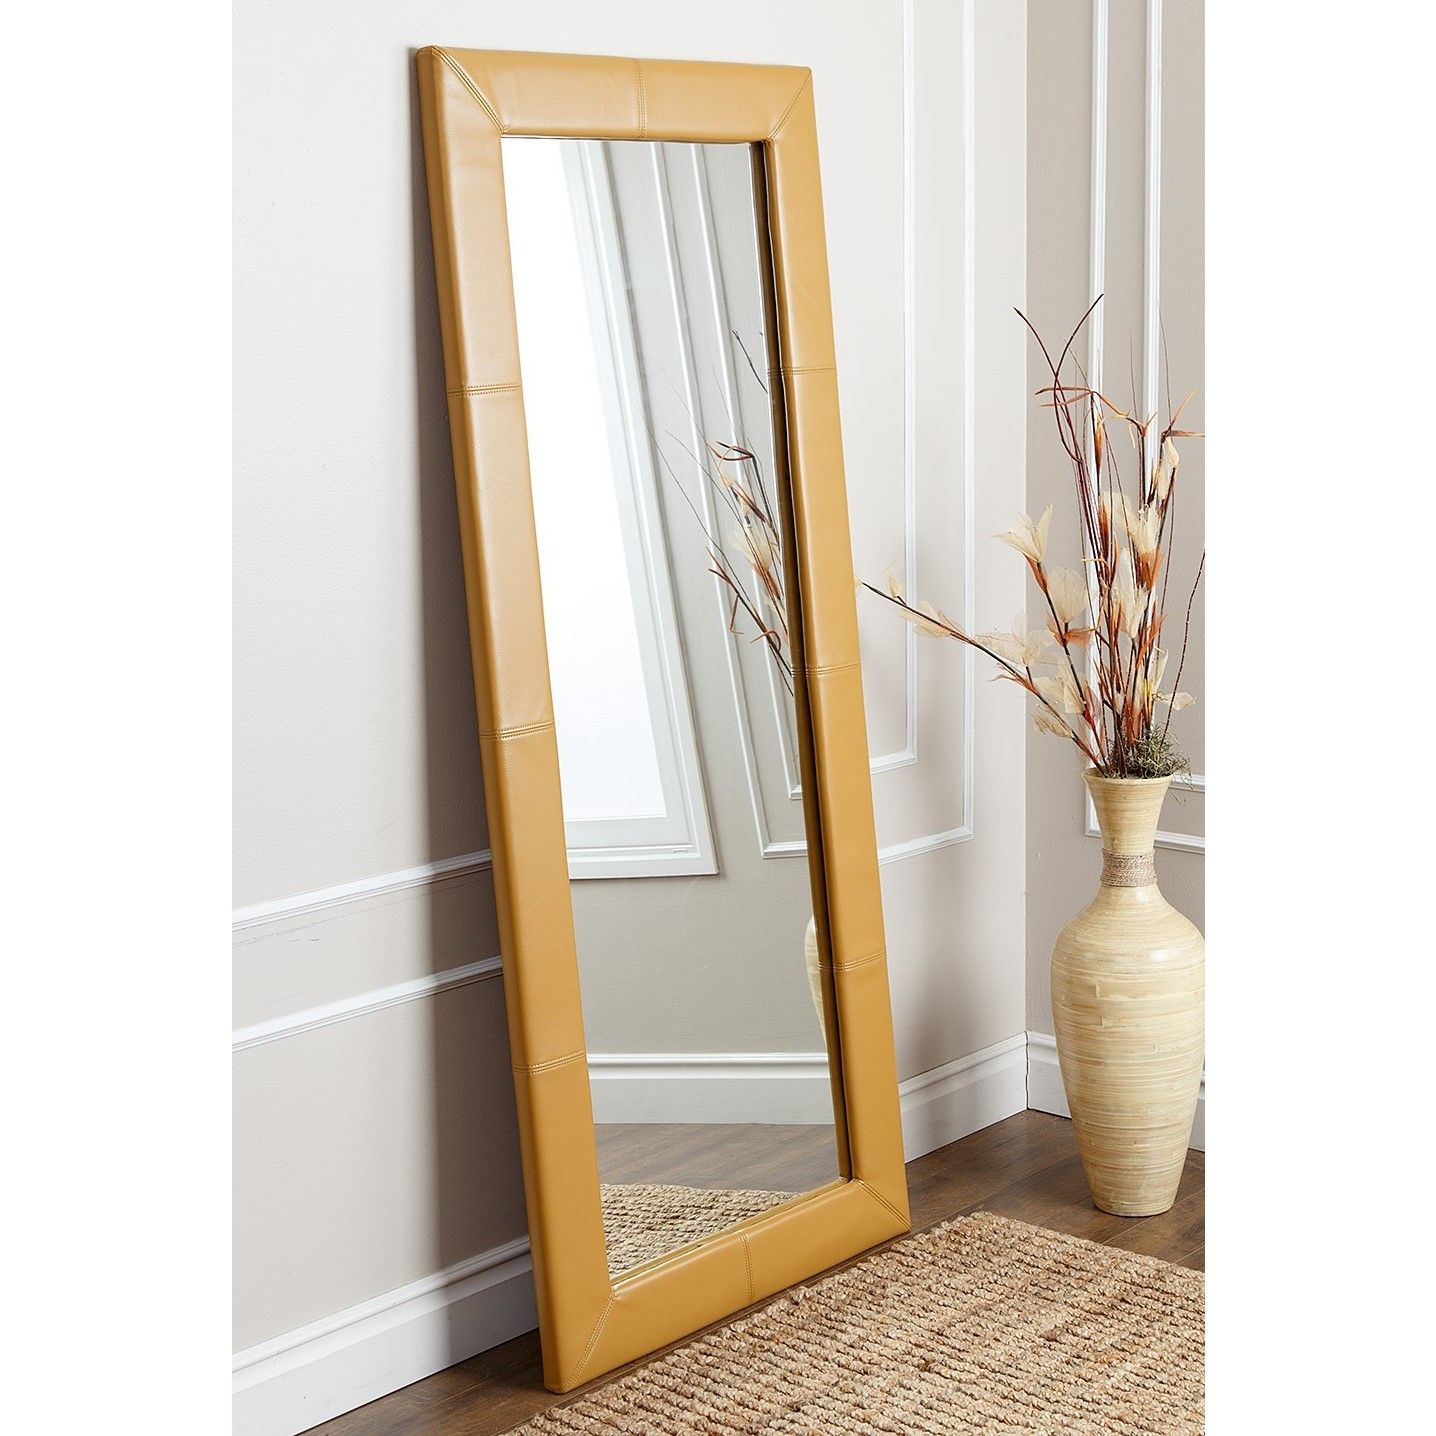 ABBYSON LIVING Delano Yellow Leather Floor Mirror